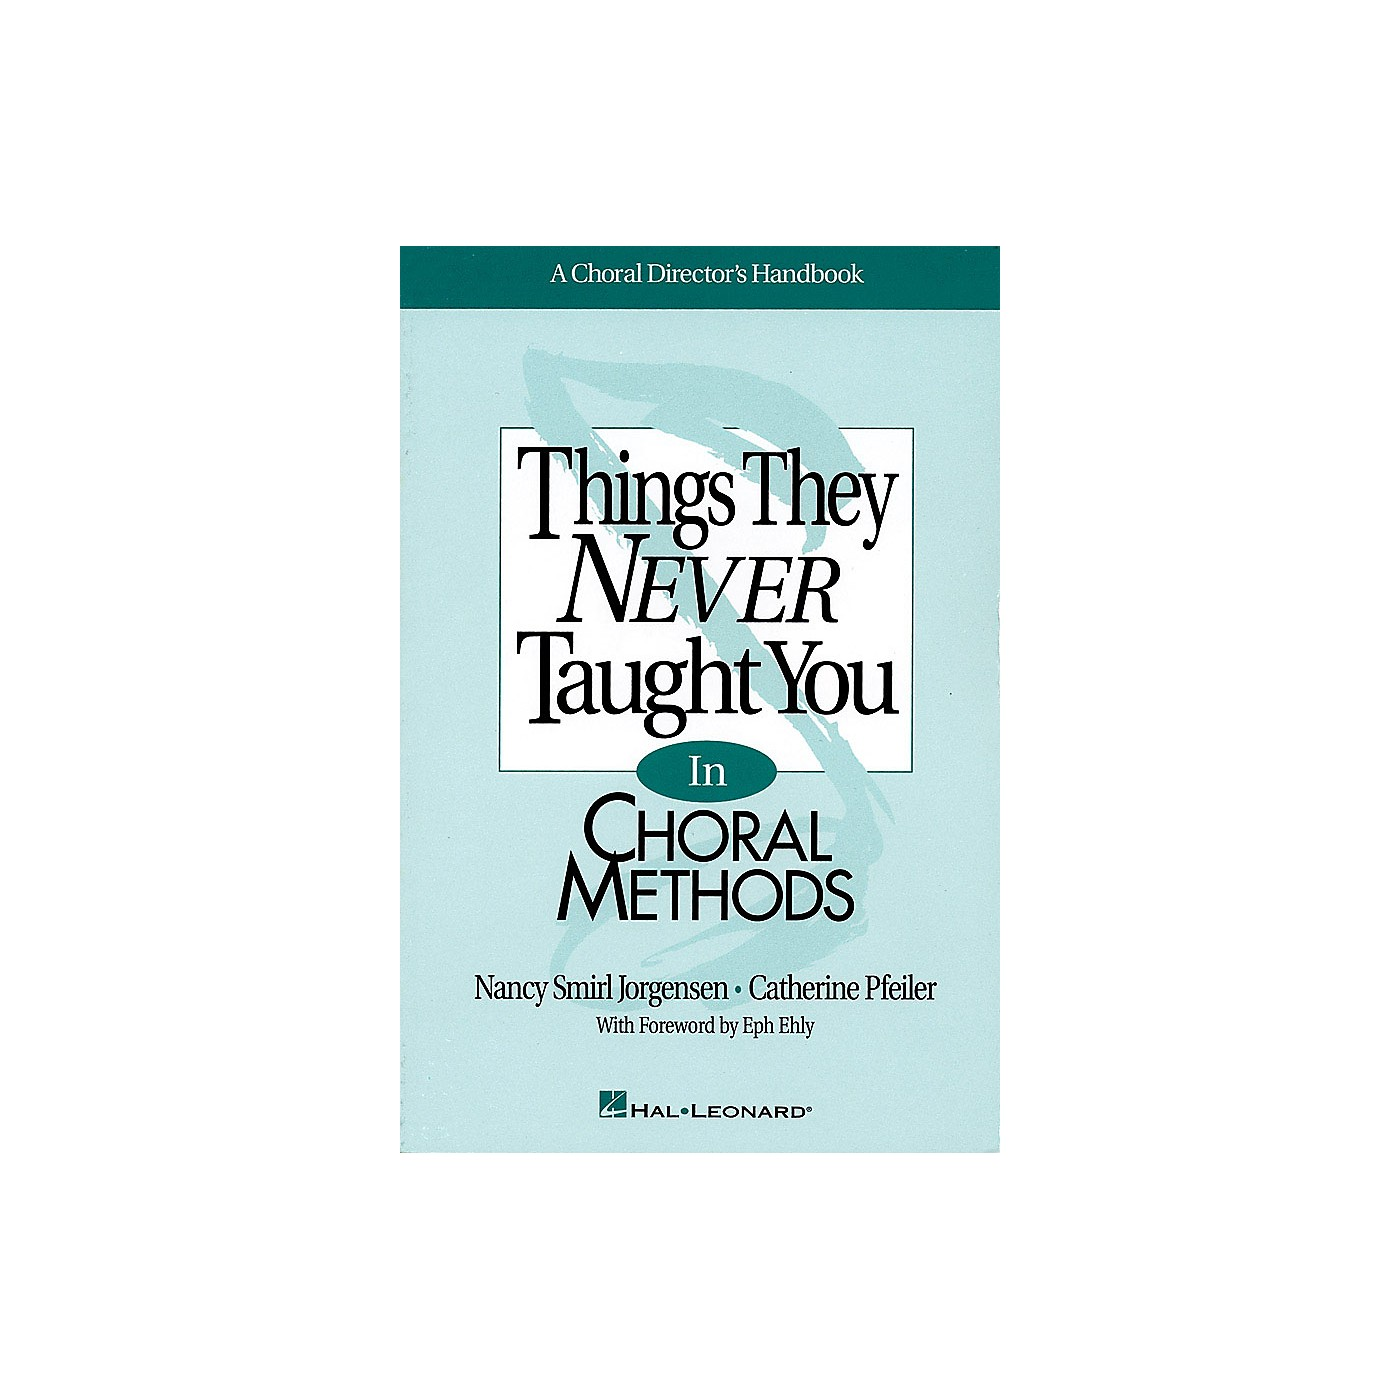 Hal Leonard Things They Never Taught You in Choral Methods RESOURCE BK composed by Nancy Smirl Jorgensen thumbnail